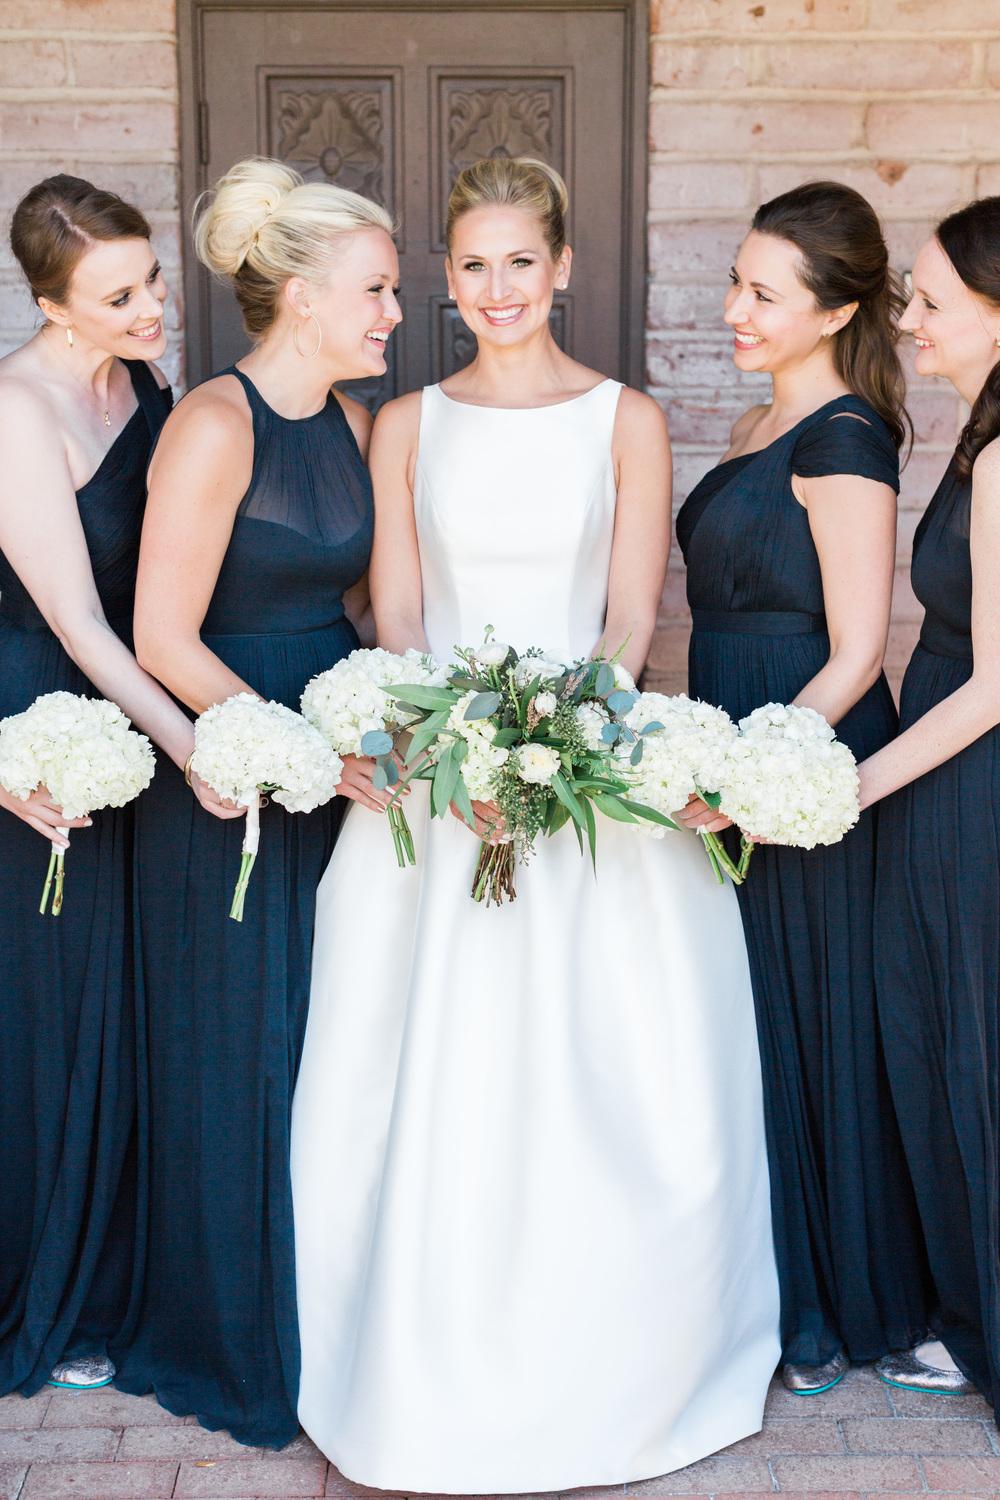 Gorgeous bride smiling at camera with her bridesmaids in navy blue